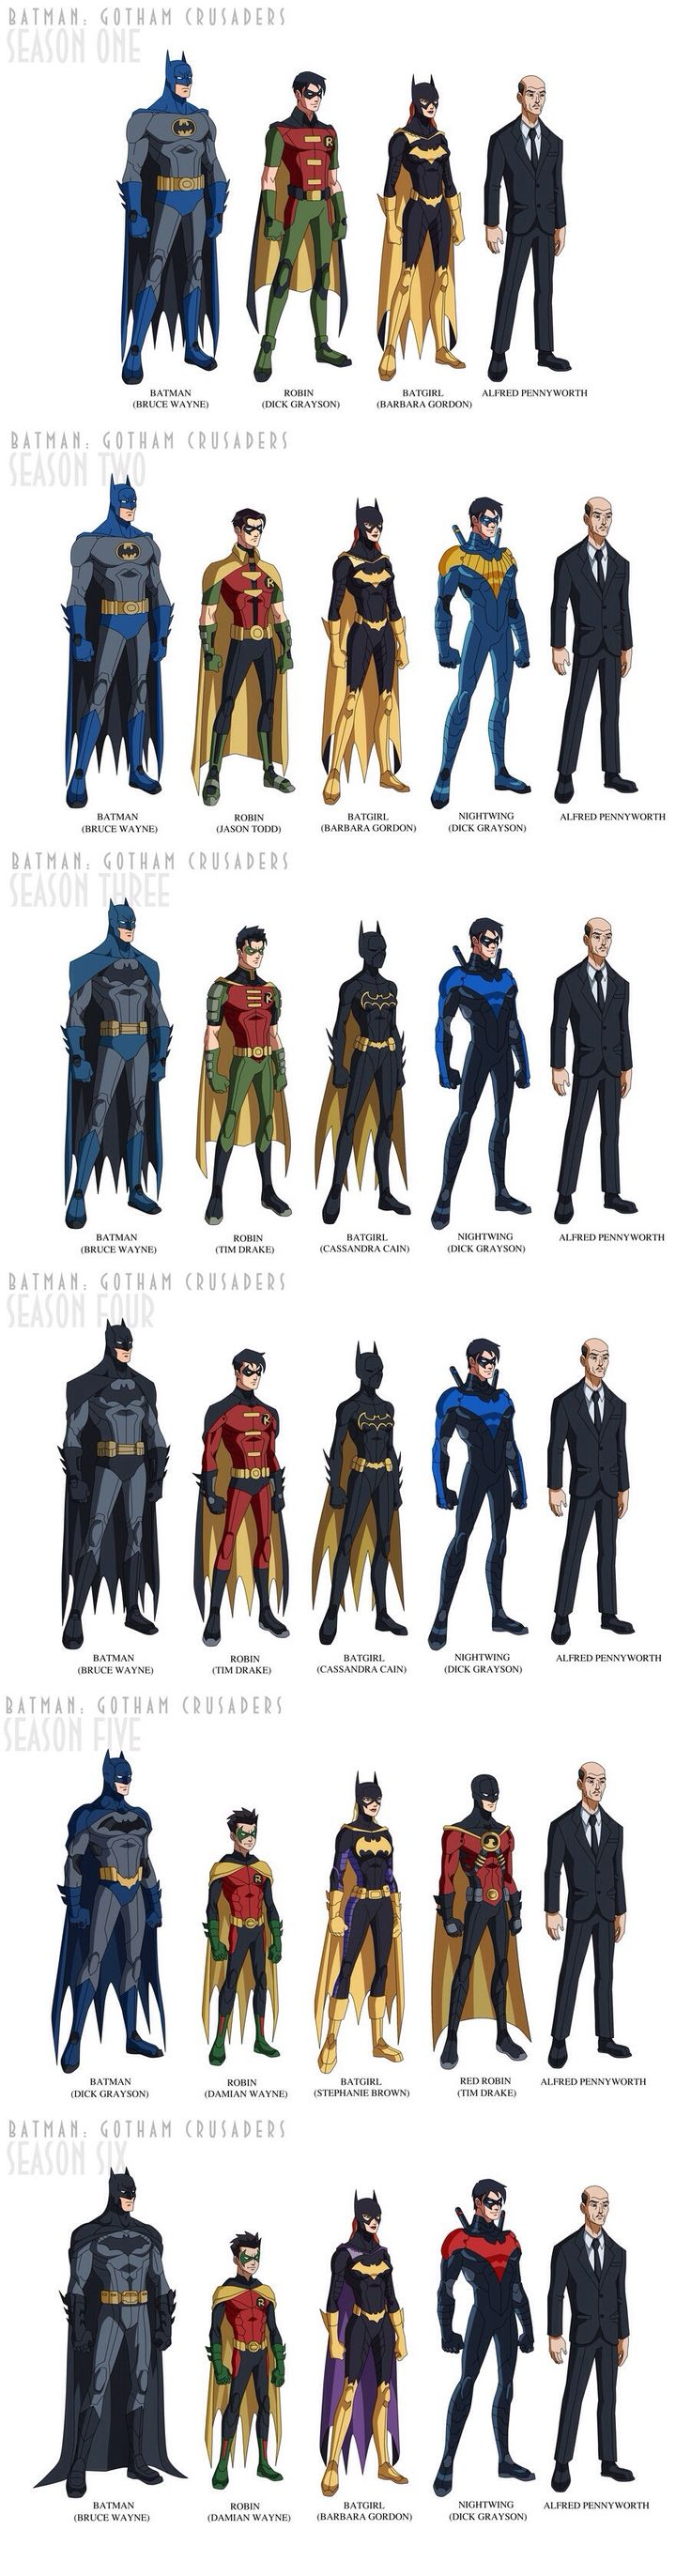 I think that alfred looks the best among all of them. His fashion sense remains absolutely classy throughout all six seasons.